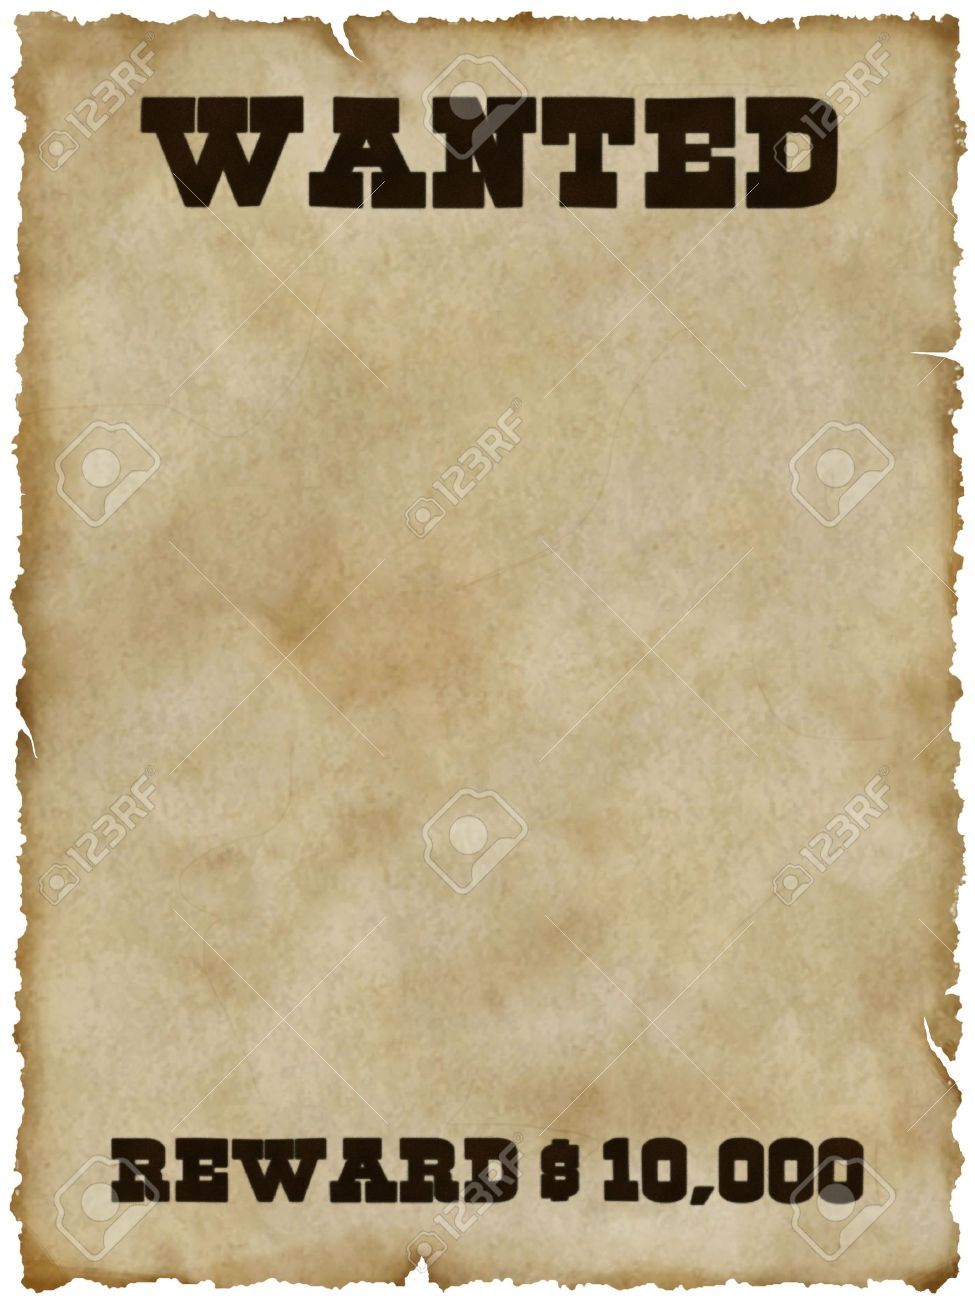 Great Wanted Poster Stock Photo   3107218 Intended Old Fashioned Wanted Poster